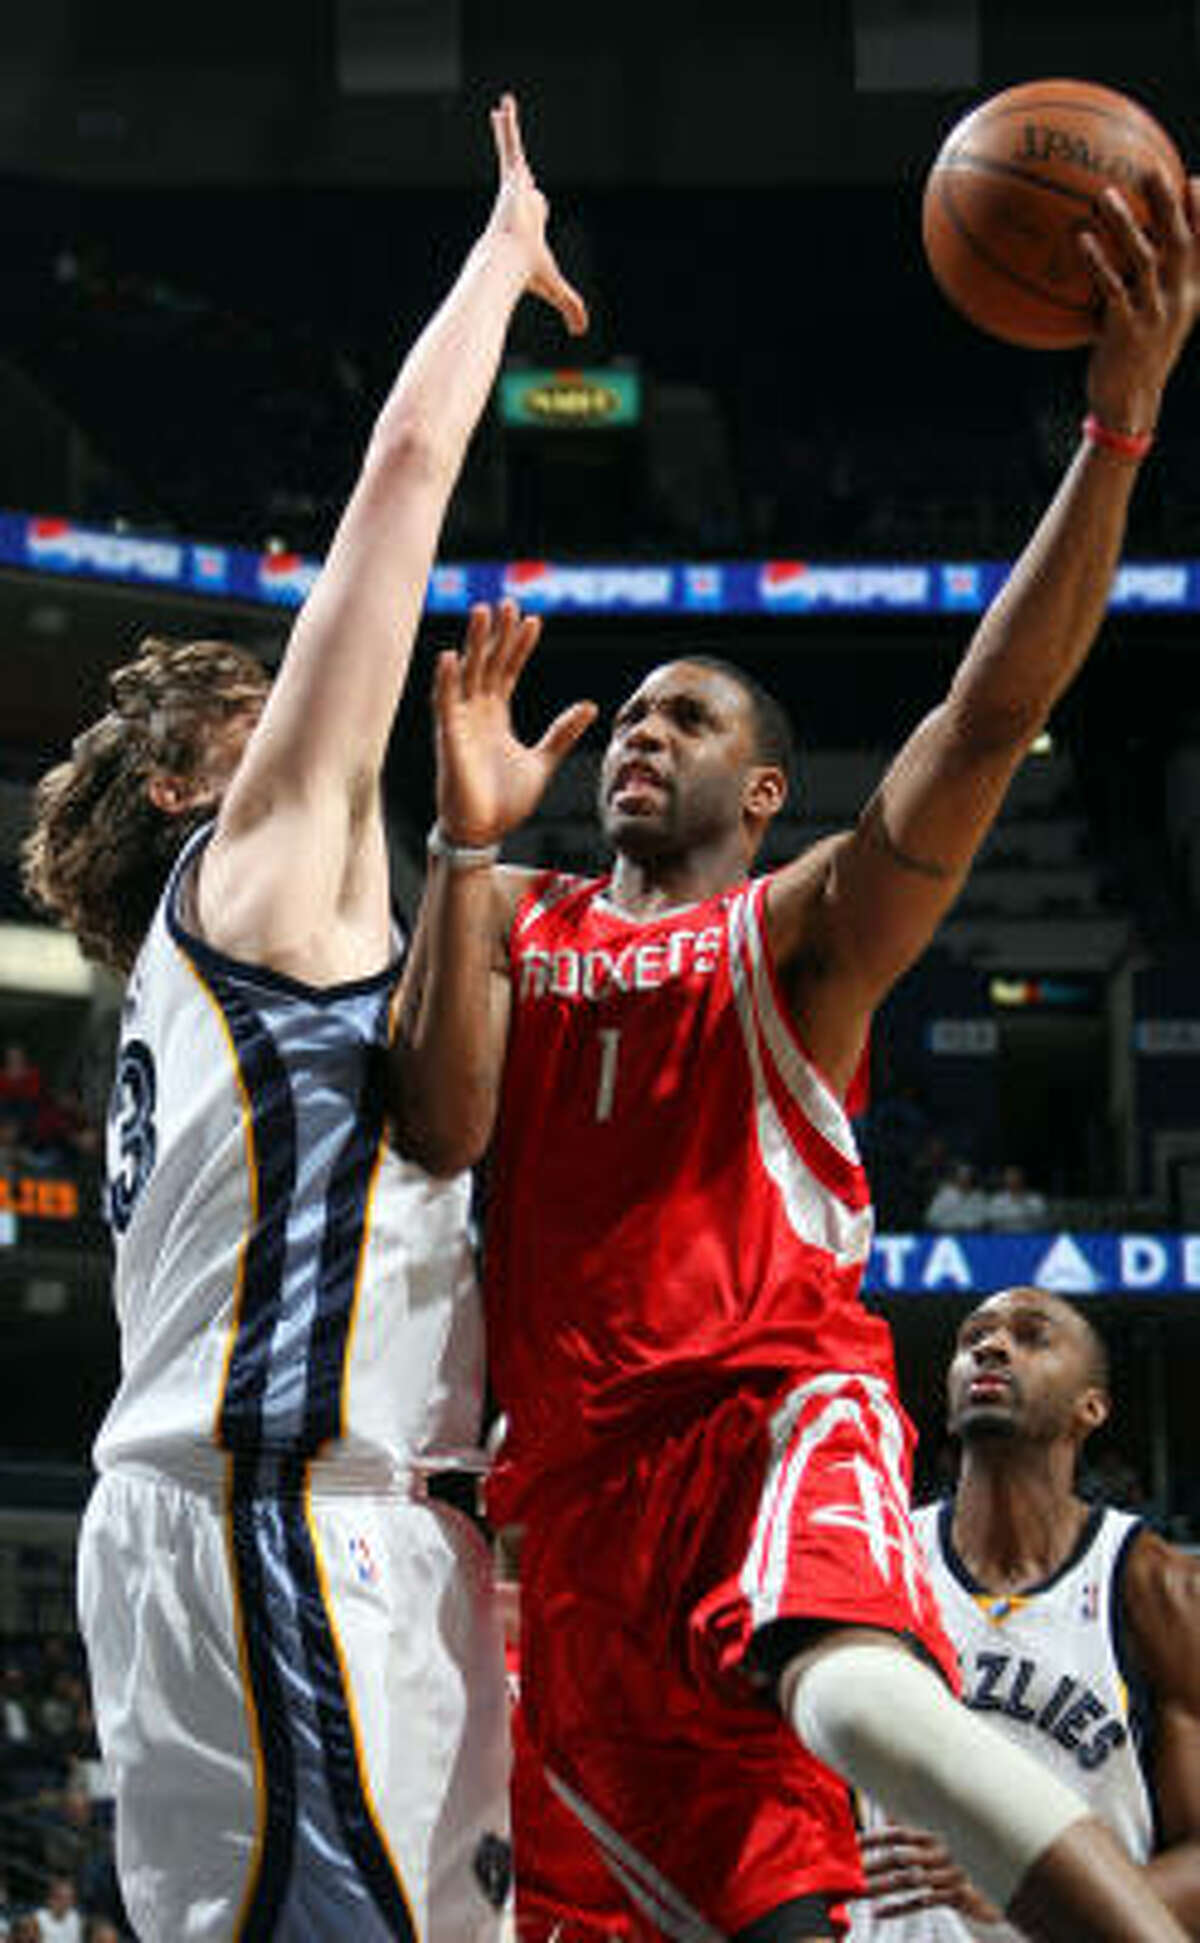 Feb. 4, Rockets fall to Grizzlies 104-93 . Tracy McGrady, right, and the Rockets cut a 16-point deficit in the fourth quarter to just four, but failed to contain rookie star O.J. Mayo, center Marc Gasol (pictured) and the hot-shooting Grizzlies down stretch en route to a loss. Statistics | Record: 30-20